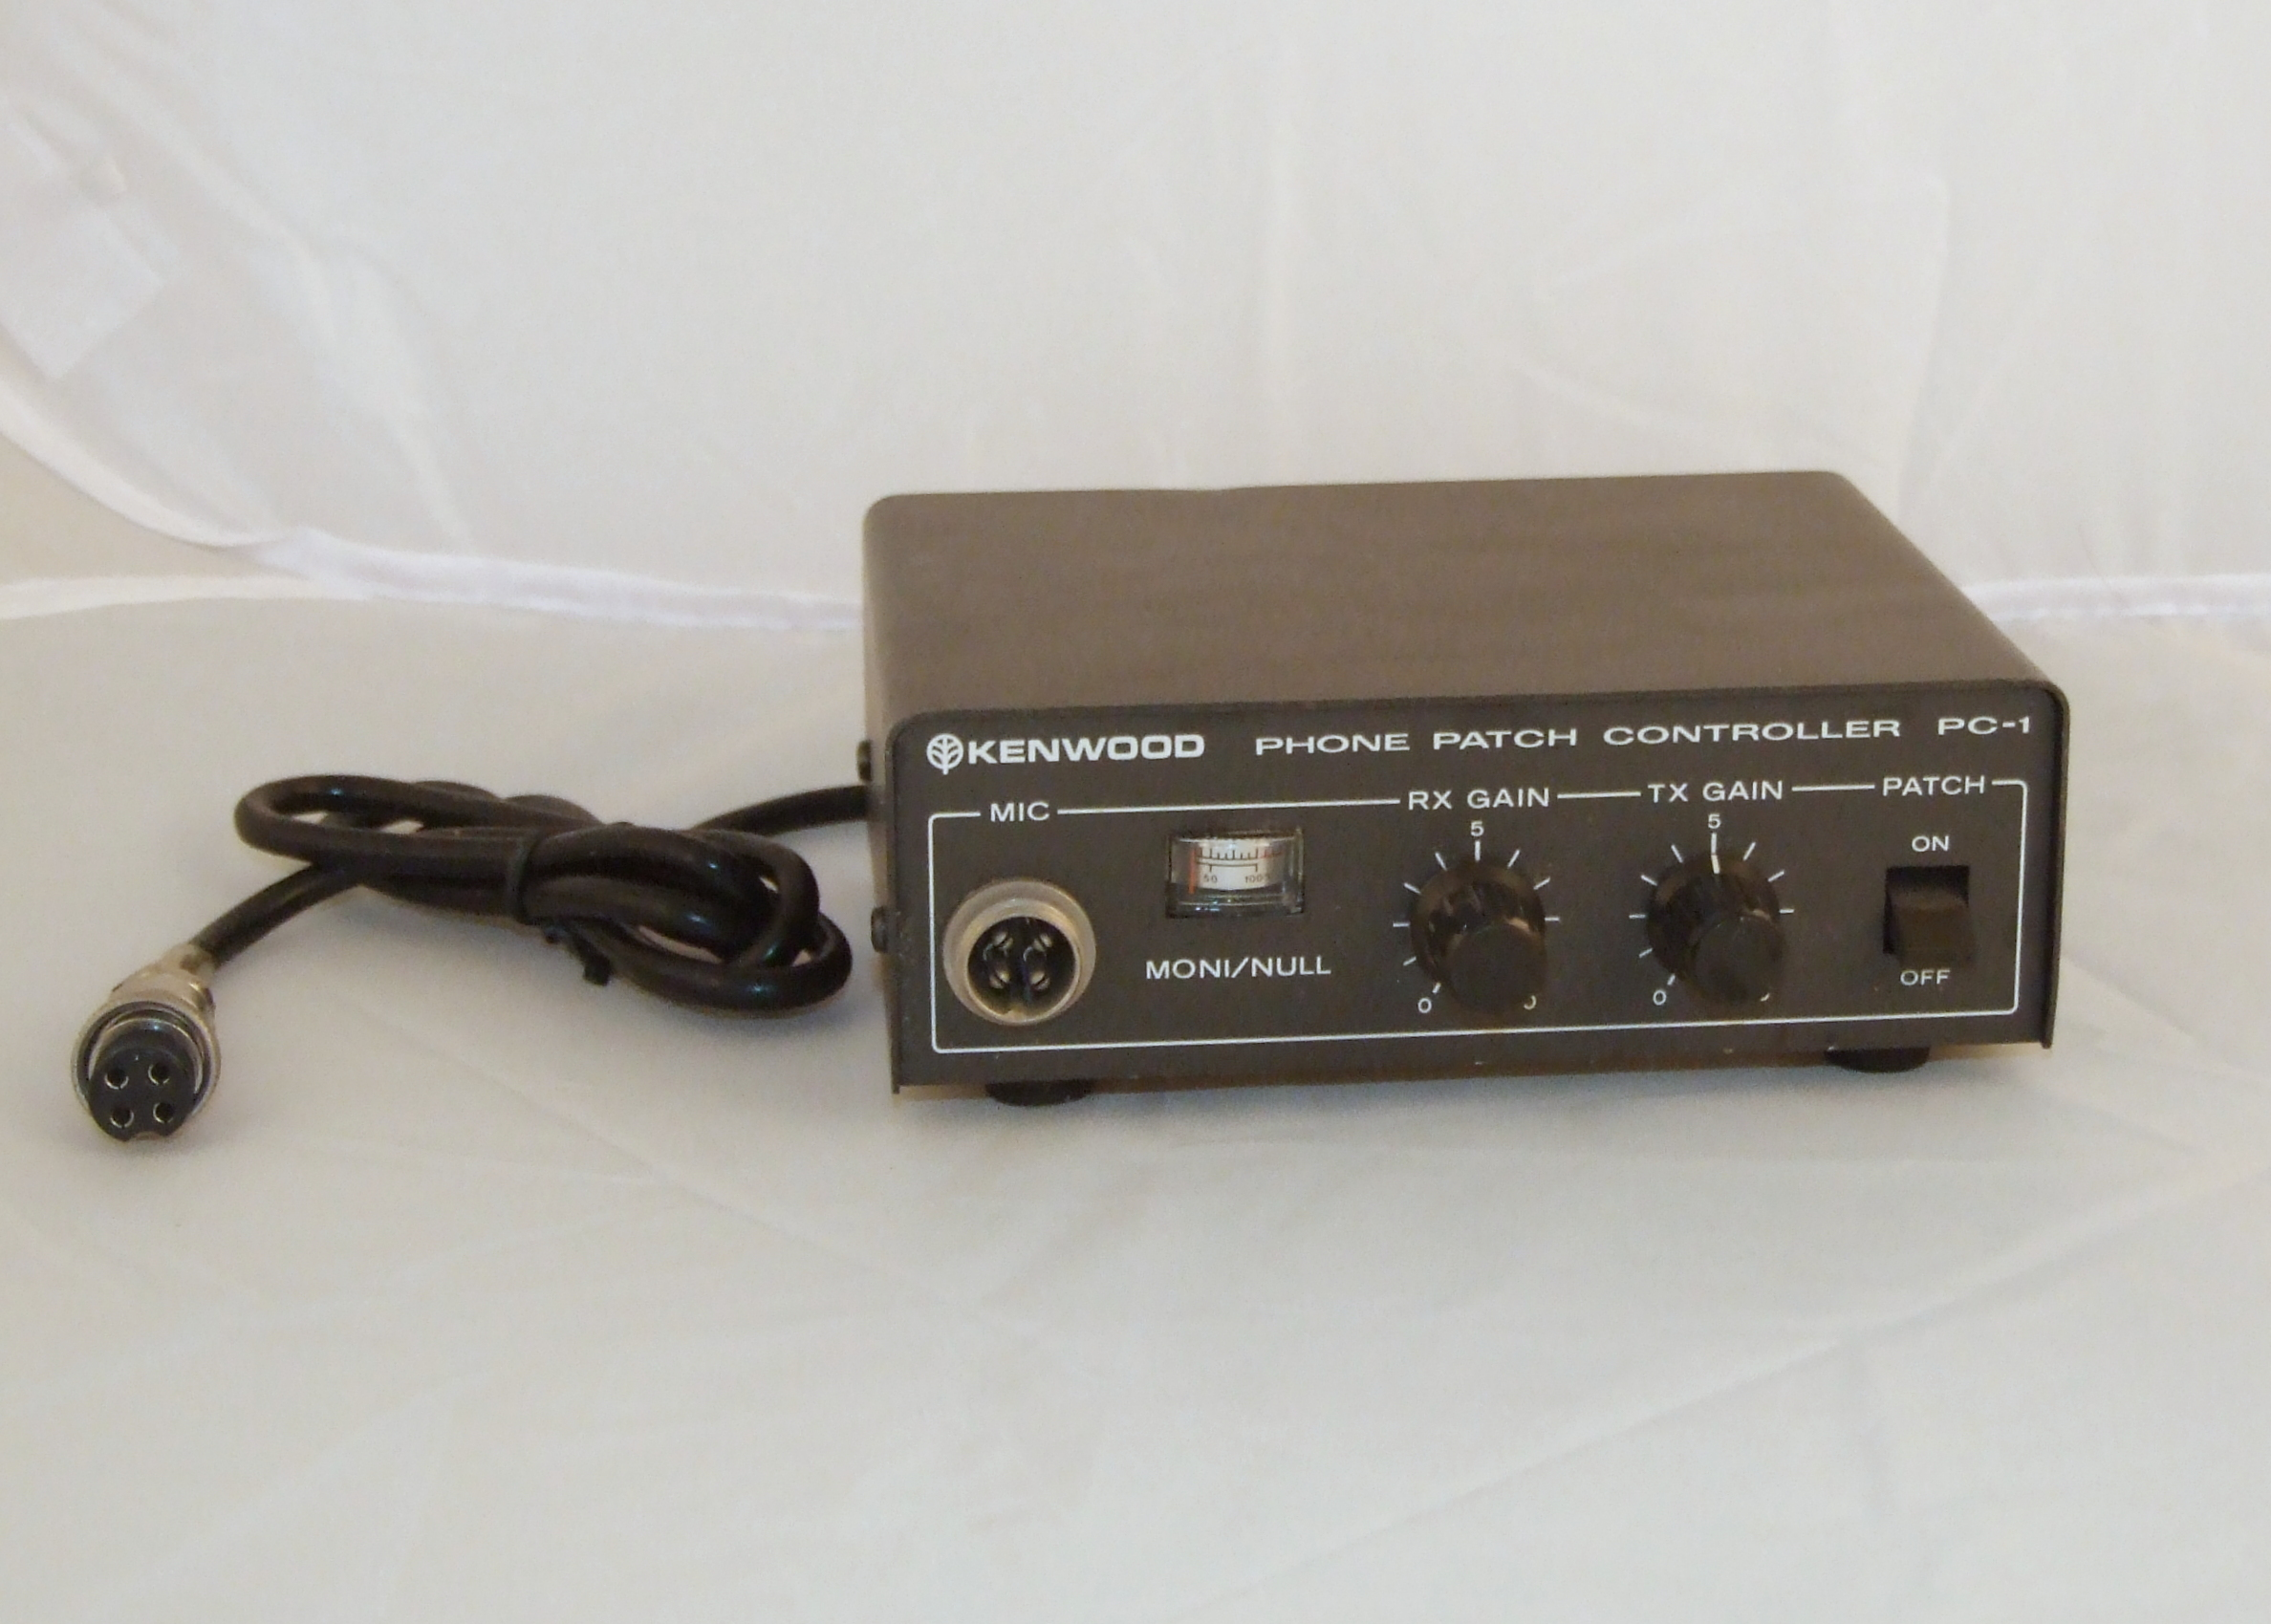 Kenwood_PC-1